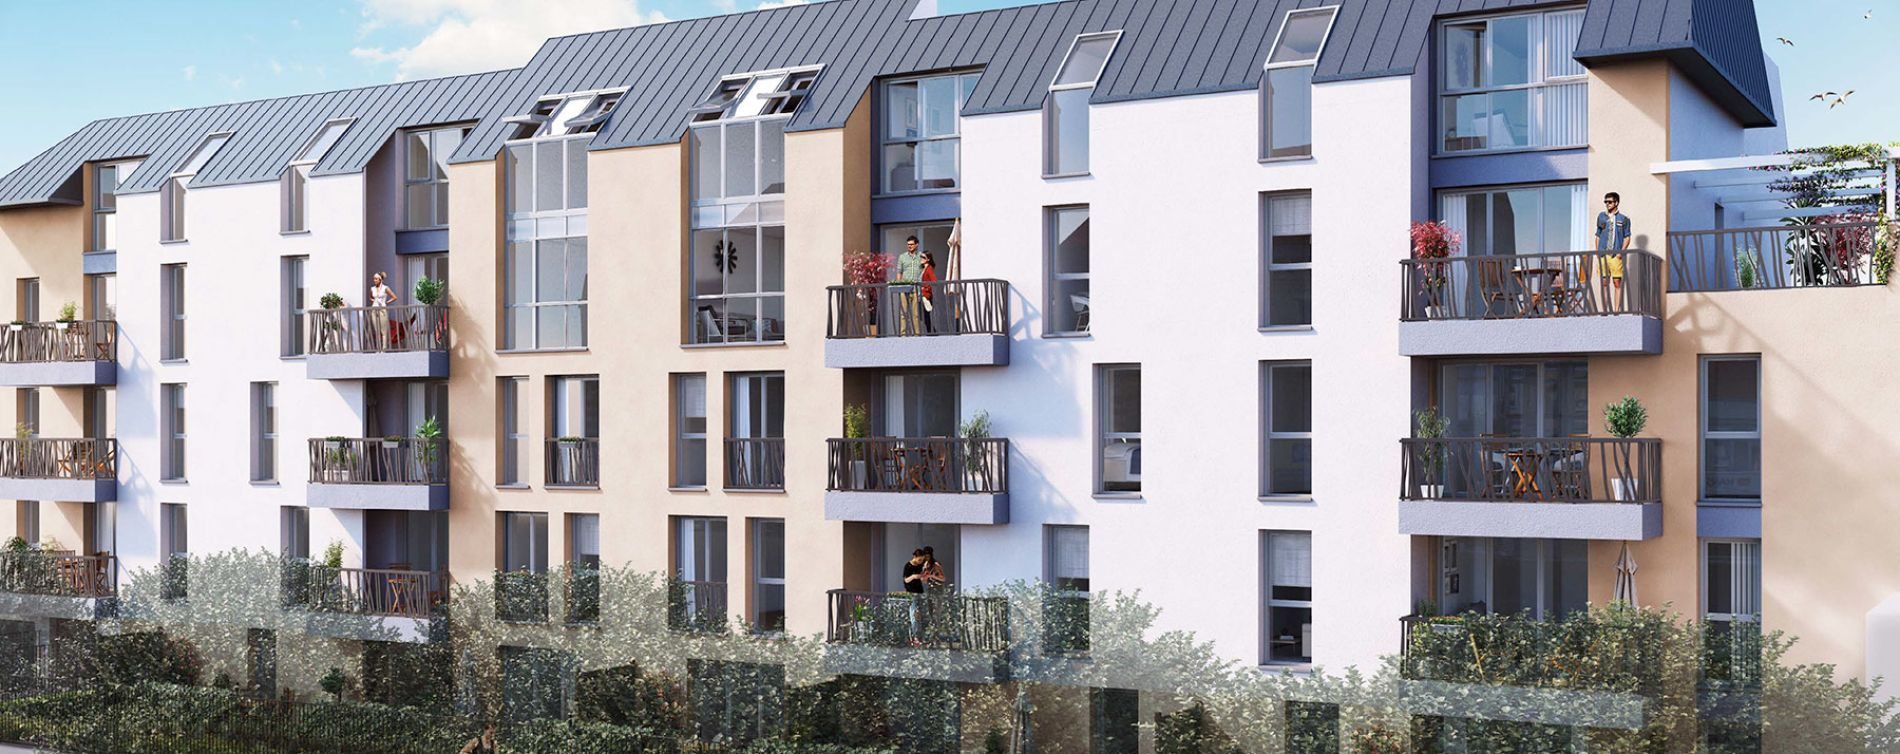 Villa quesnay livry gargan programme immobilier neuf n 213773 - Cabinet immobilier st denis ...